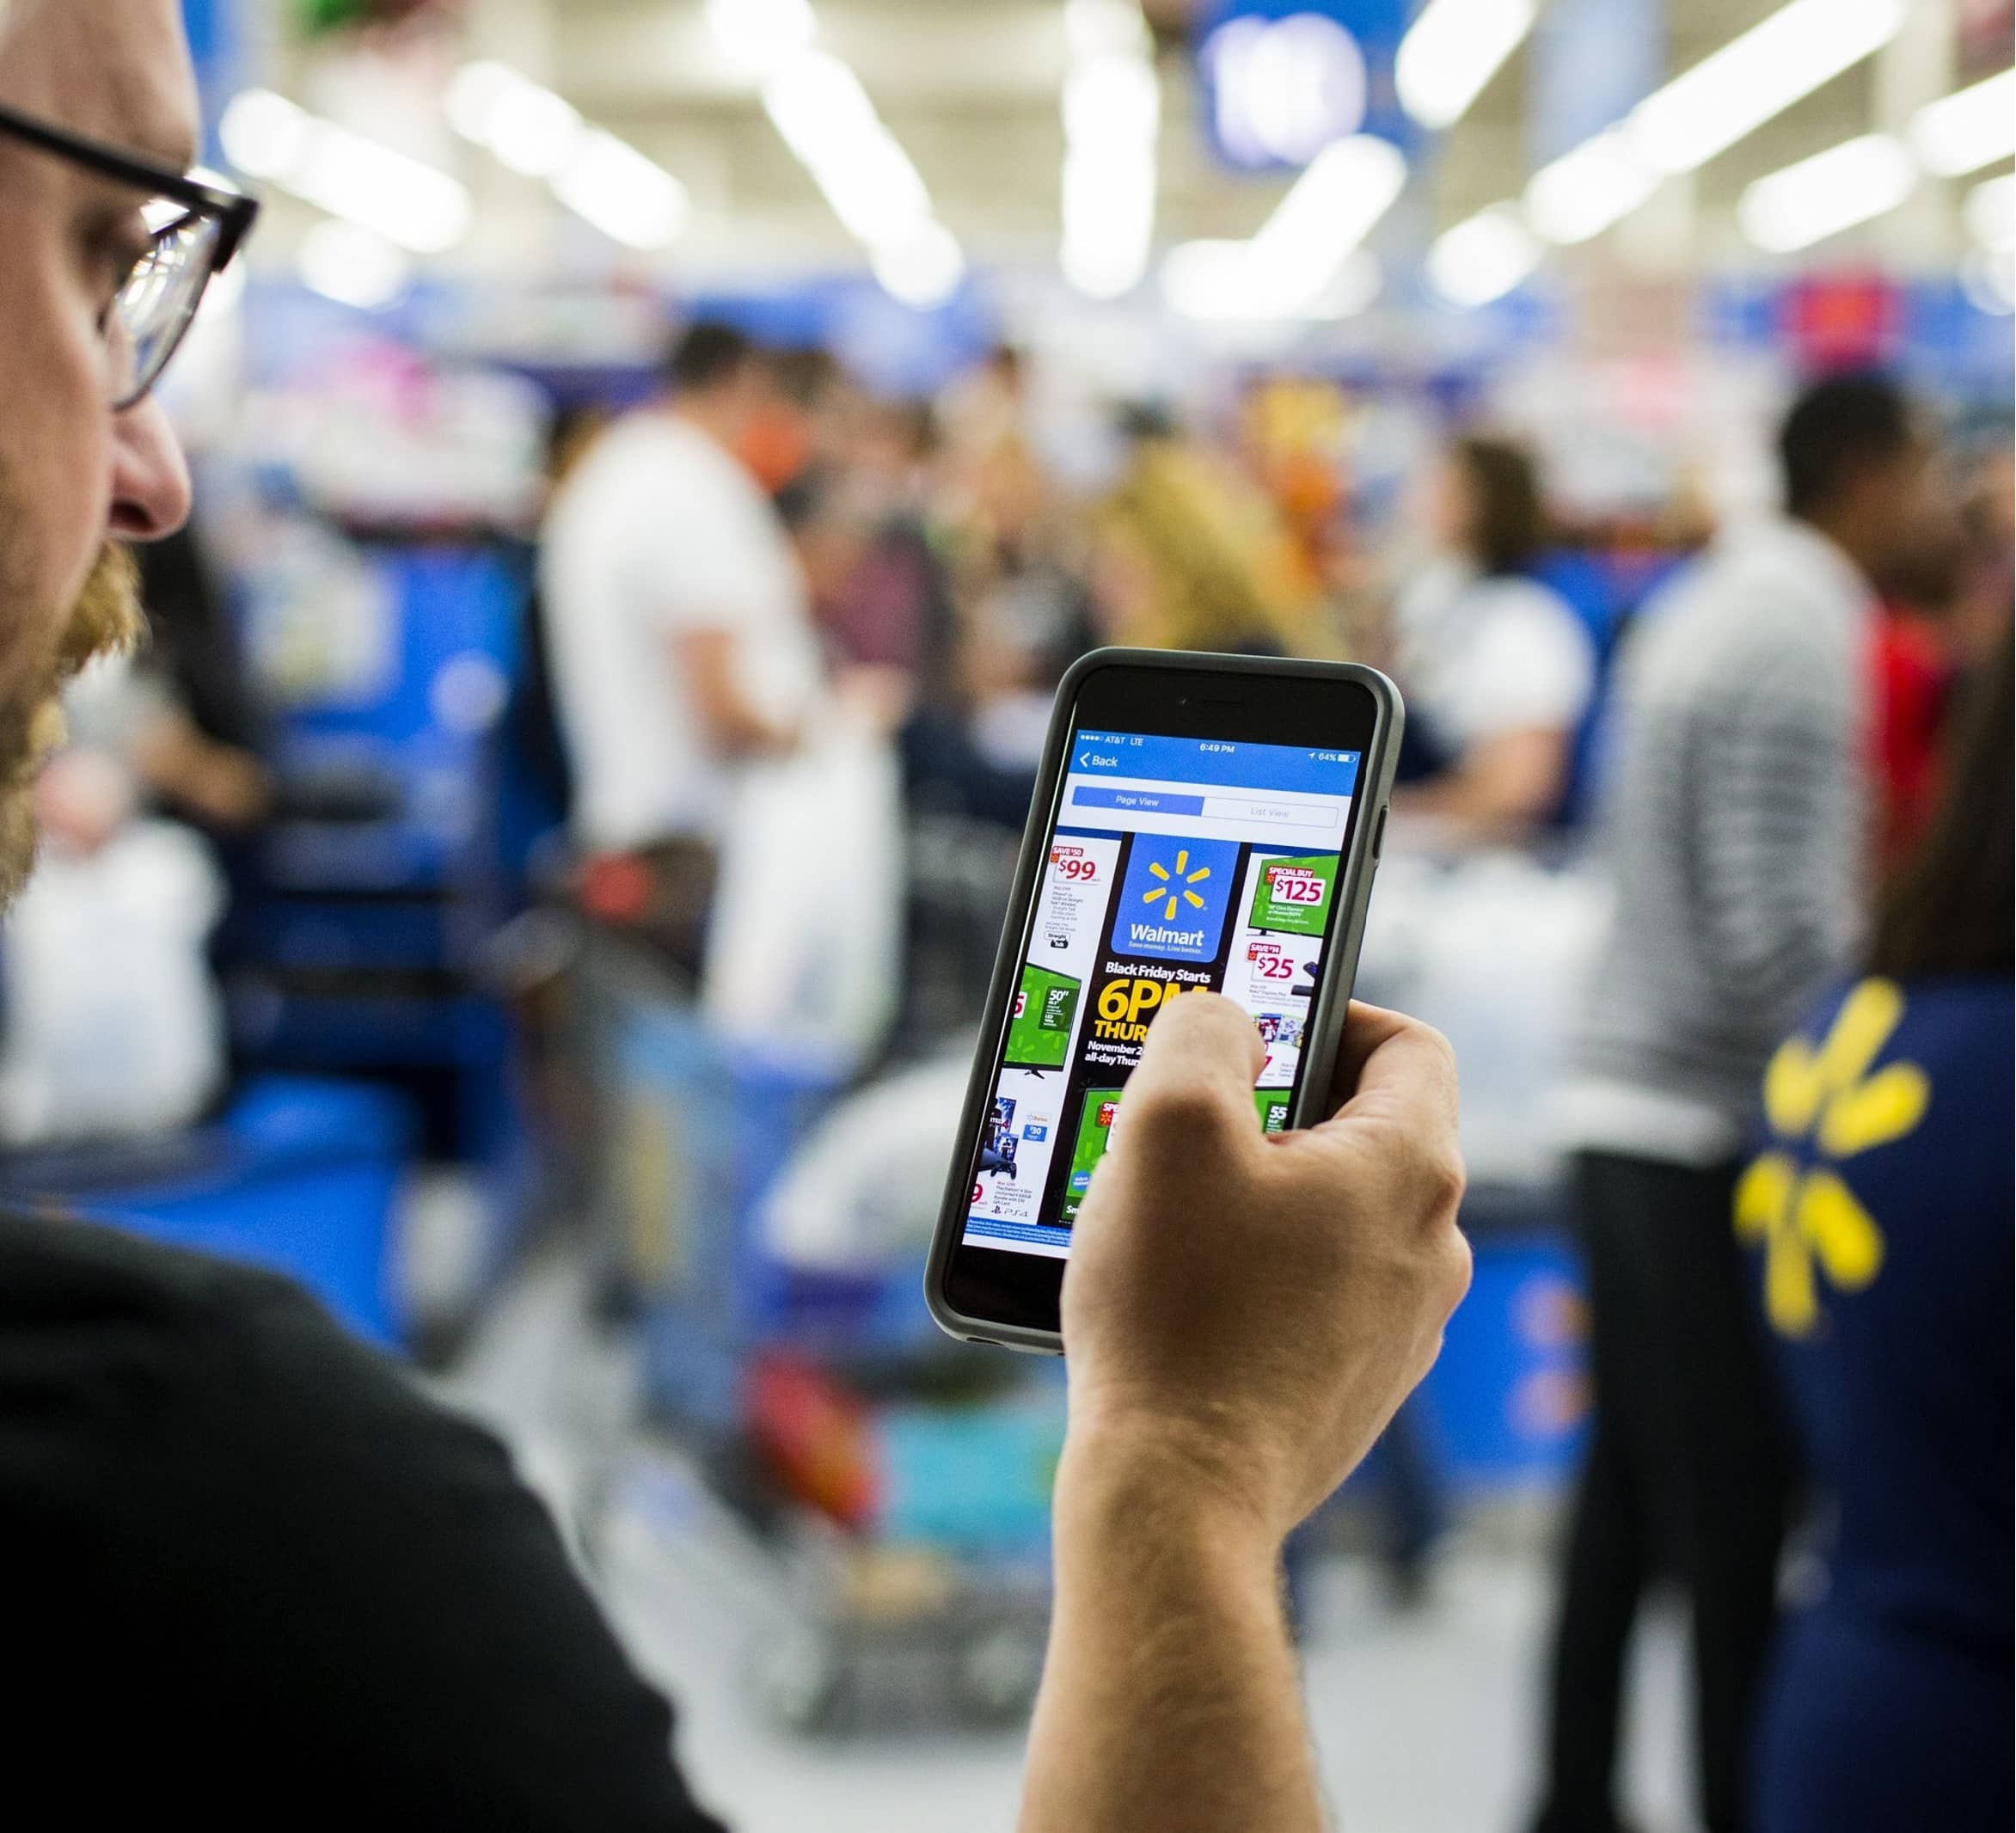 Walmart's Online Sales Soar as Shoppers Stock Up on Supplies